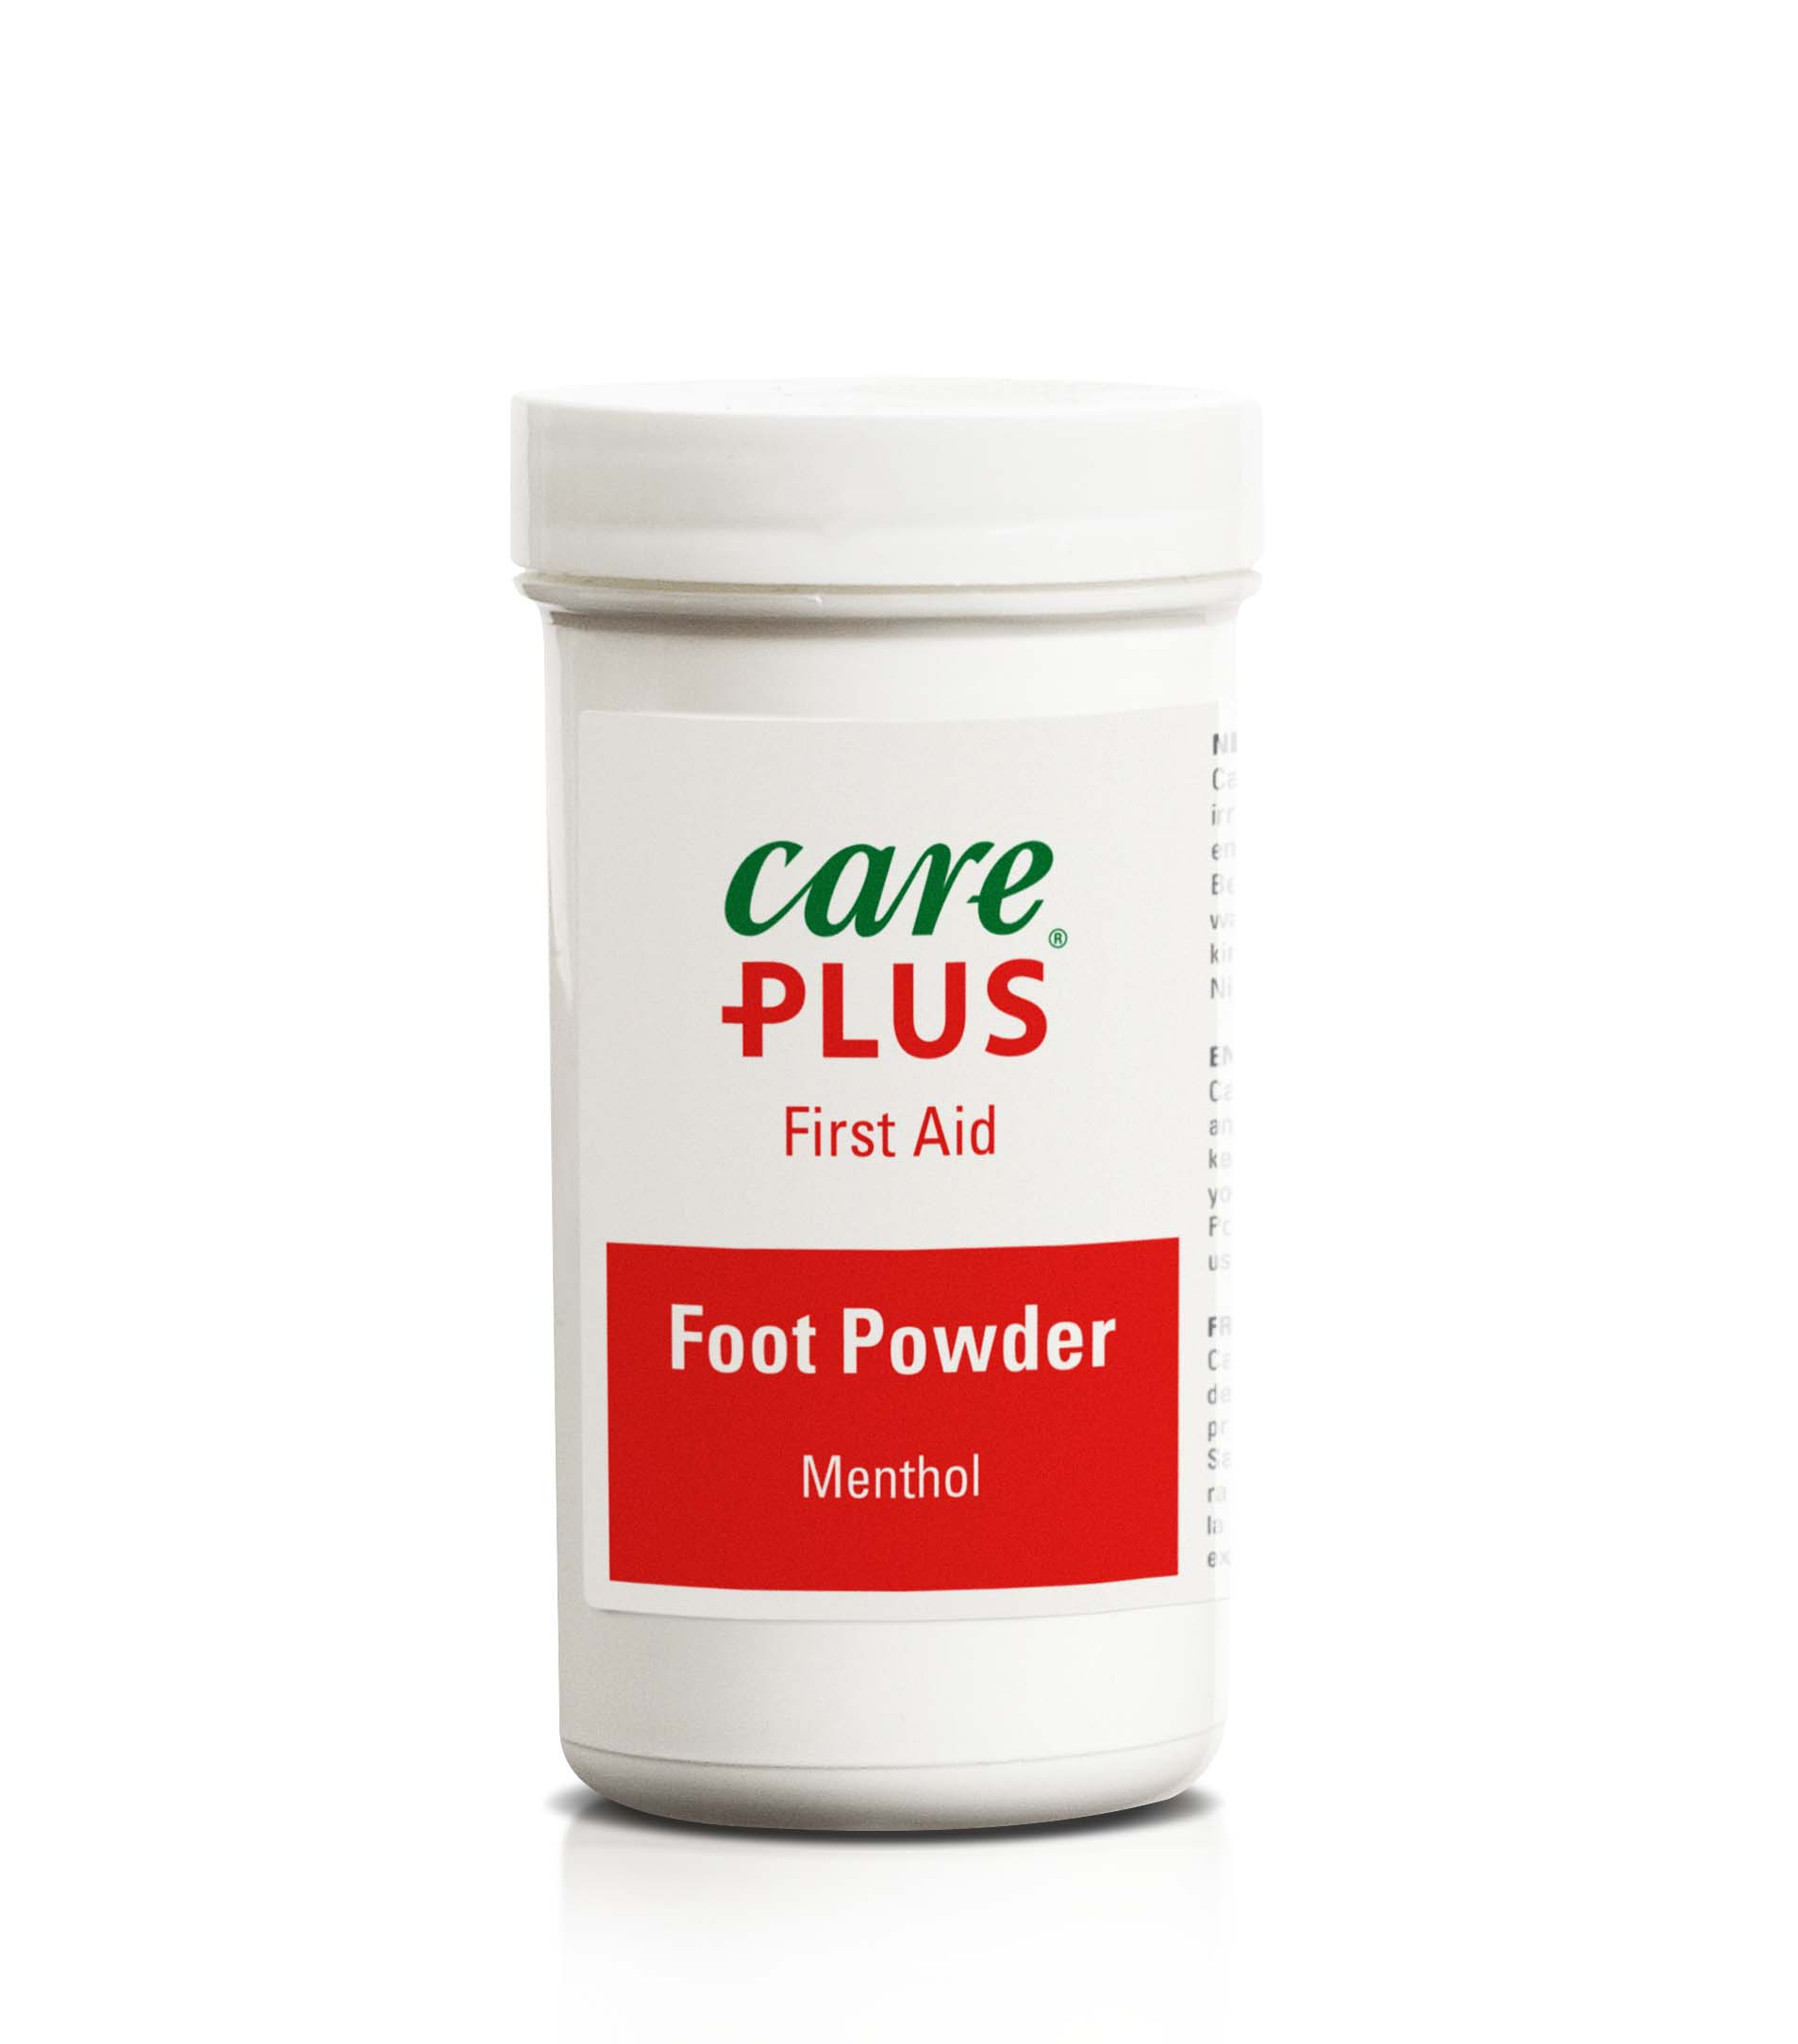 Foot Powder absorbs moisture, dries the feet, and helps prevent blisters